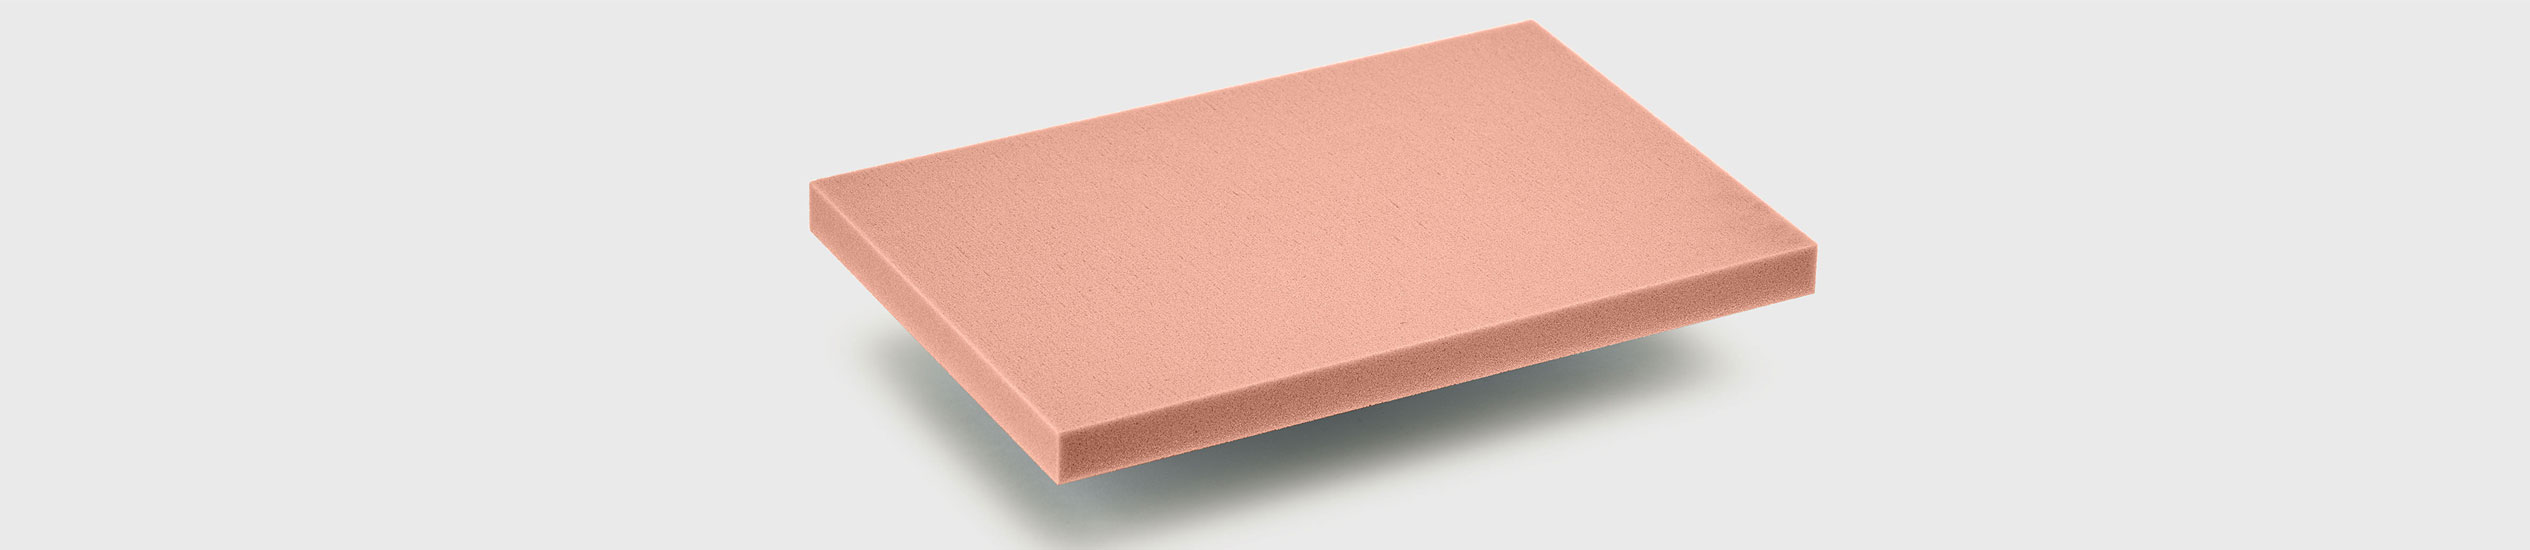 PVC foam offers optimal stiffness-to-weight-ratio, good impact strength , water resistance, thermal insulation, low resin absorption and high fatigue resistance